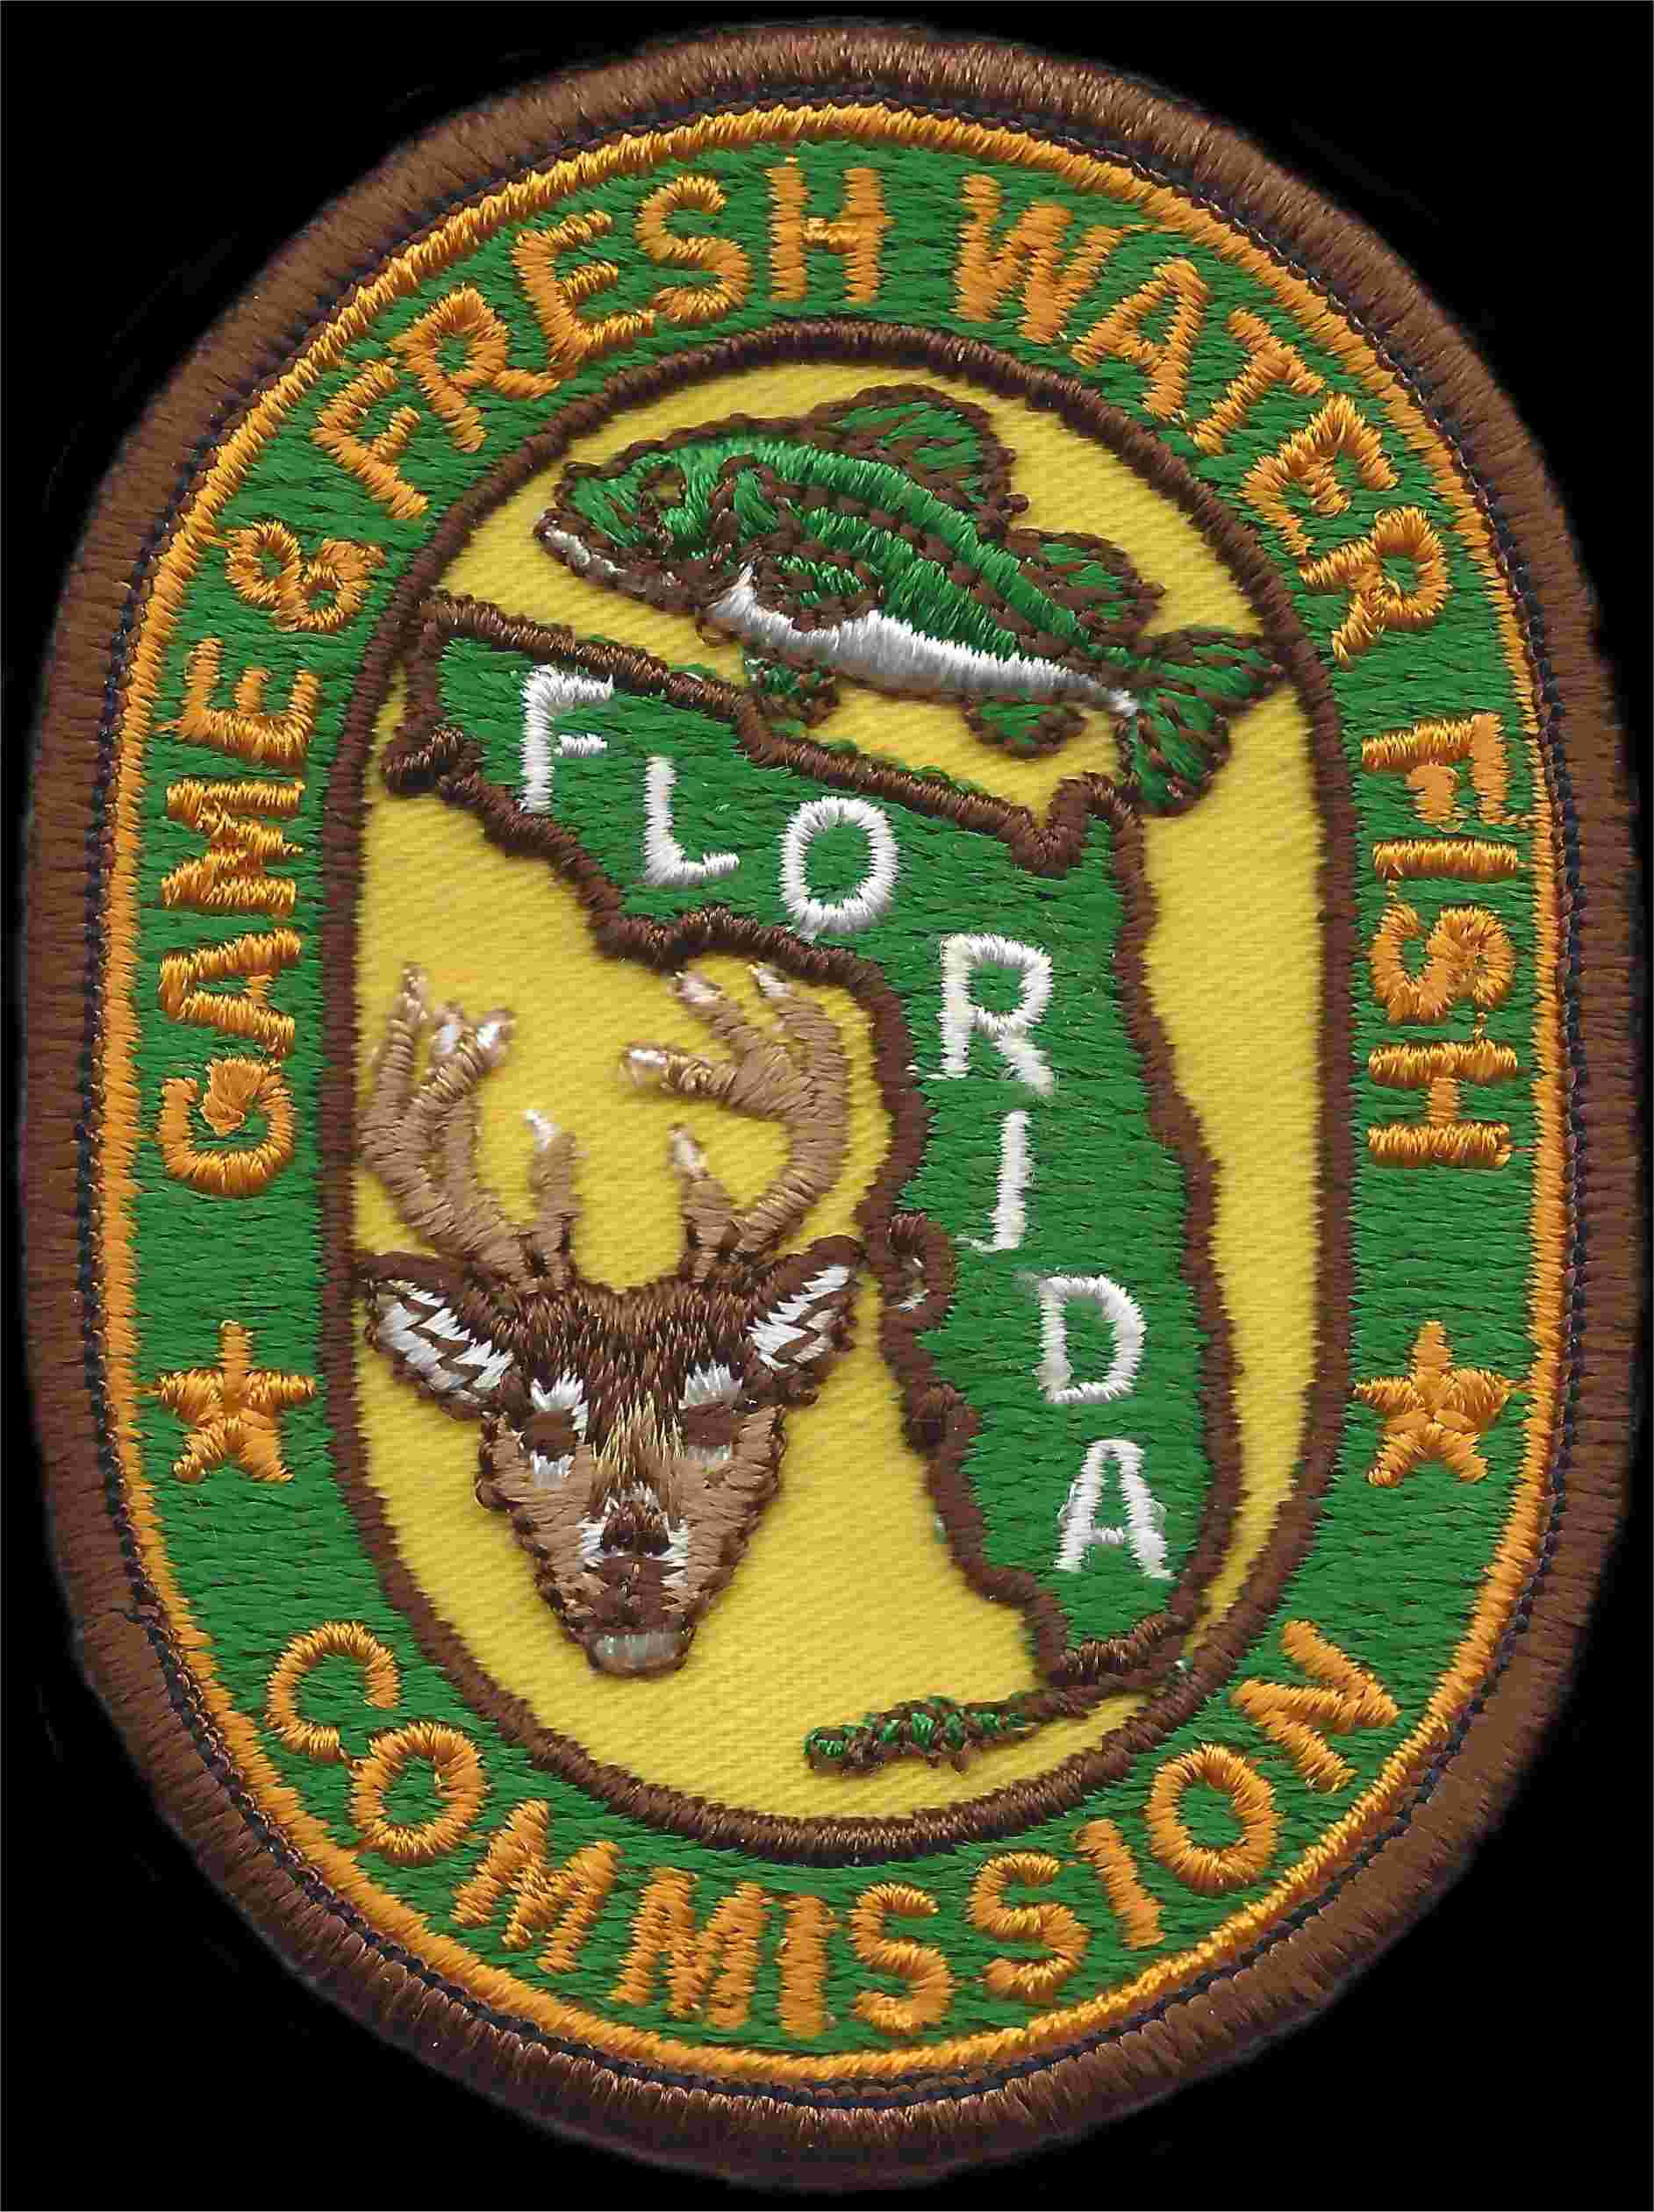 Florida Game and Fresh Water Fish Commission